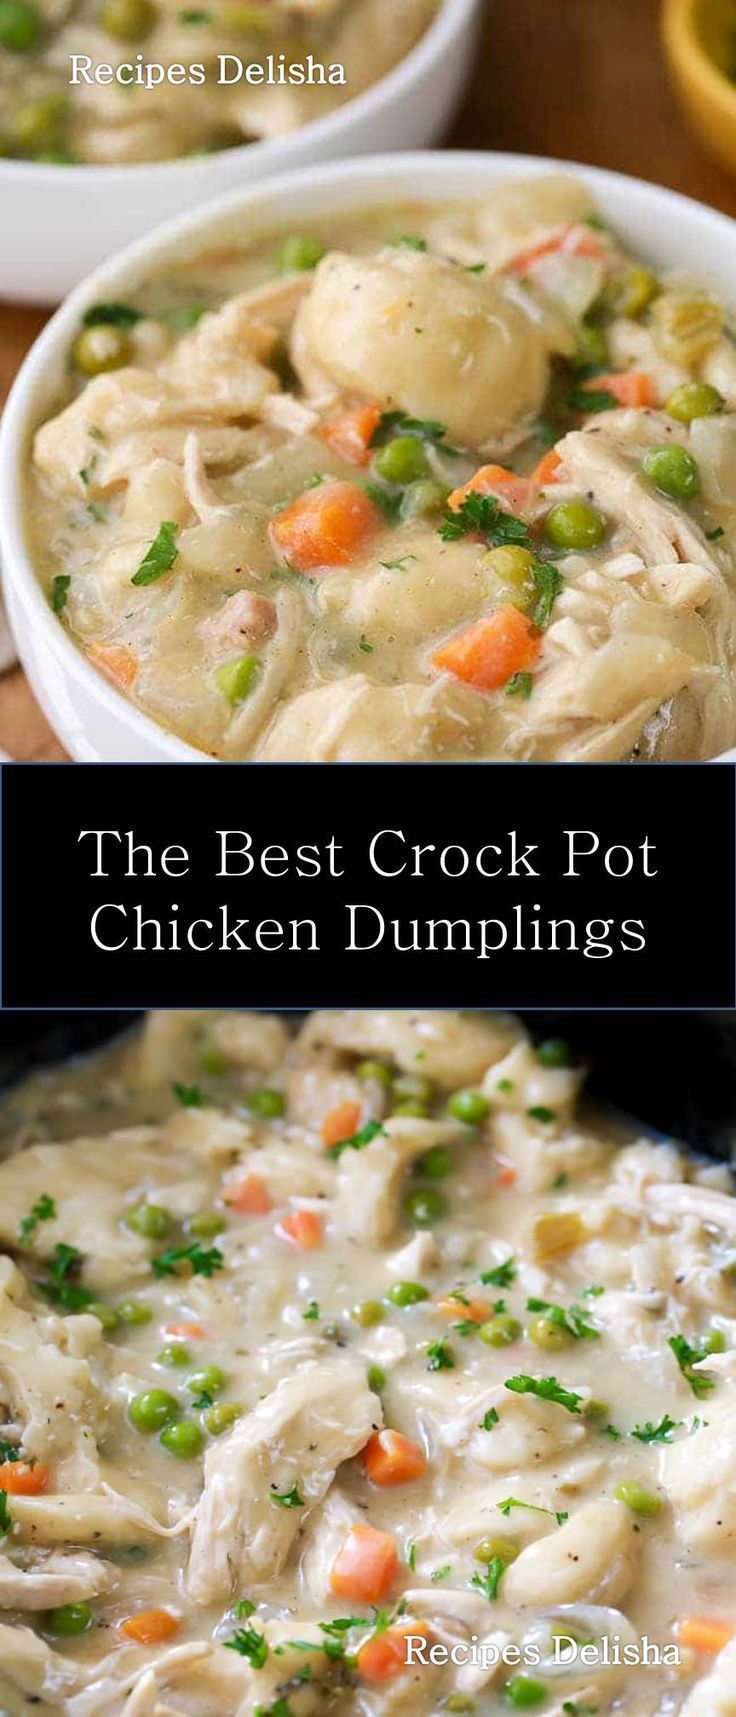 ★★★★★ 976 Riviews : Recipe Delisha ==>Crock Pot Chicken Dumplings #Crock #Pot #Chicken #Dumplings Easy Crock Pot Chicken and Dumplings. Juicy chicken breasts cook to tender perfection in the slow cooker in a rich creamy sauce. Shortcut dumplings make this delicious comforting meal effortless. #chickendumplingscrockpot ★★★★★ 976 Riviews : Recipe Delisha ==>Crock Pot Chicken Dumplings #Crock #Pot #Chicken #Dumplings Easy Crock Pot Chicken and Dumplings. Juicy chicken breasts co